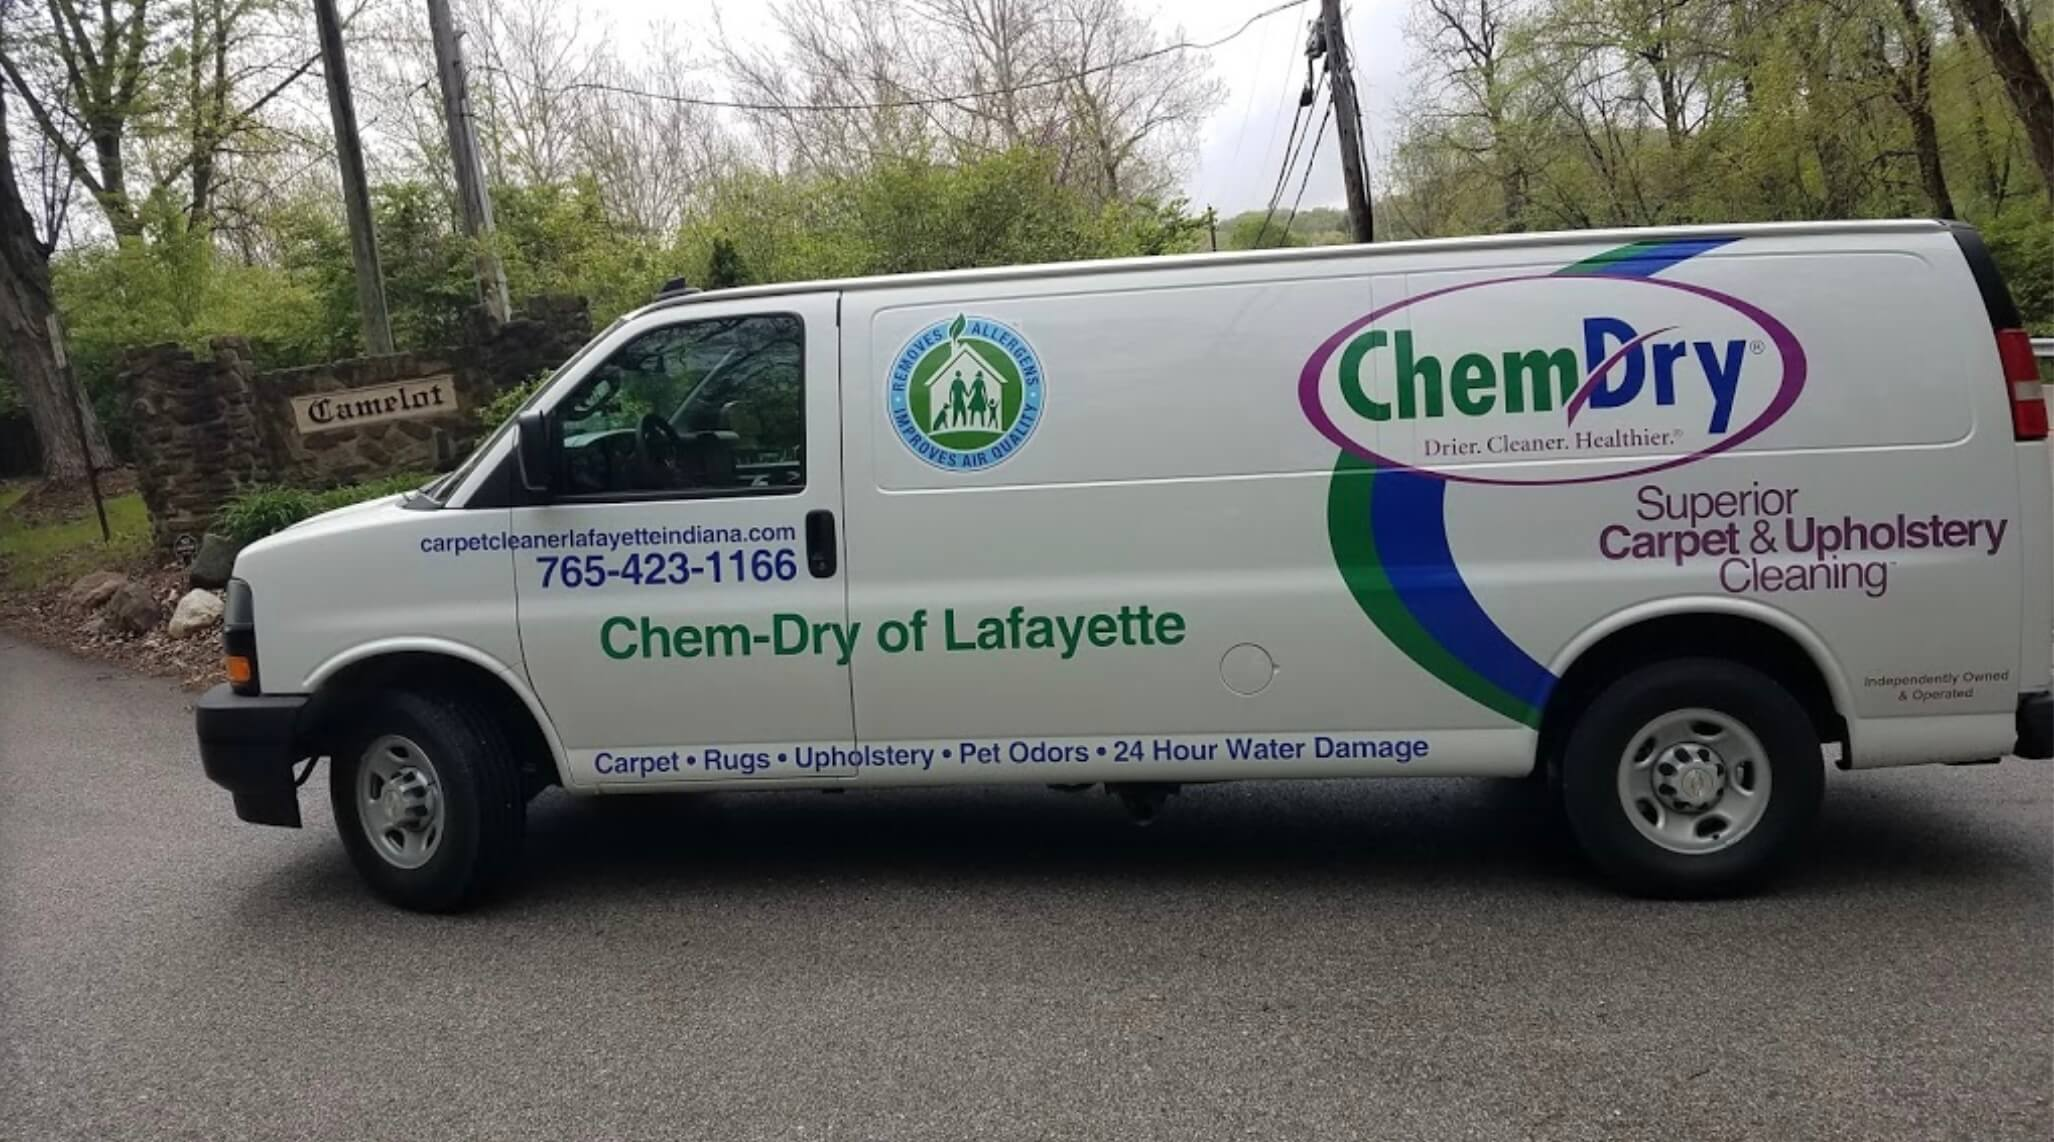 chem dry of lafayette carpet cleaning van